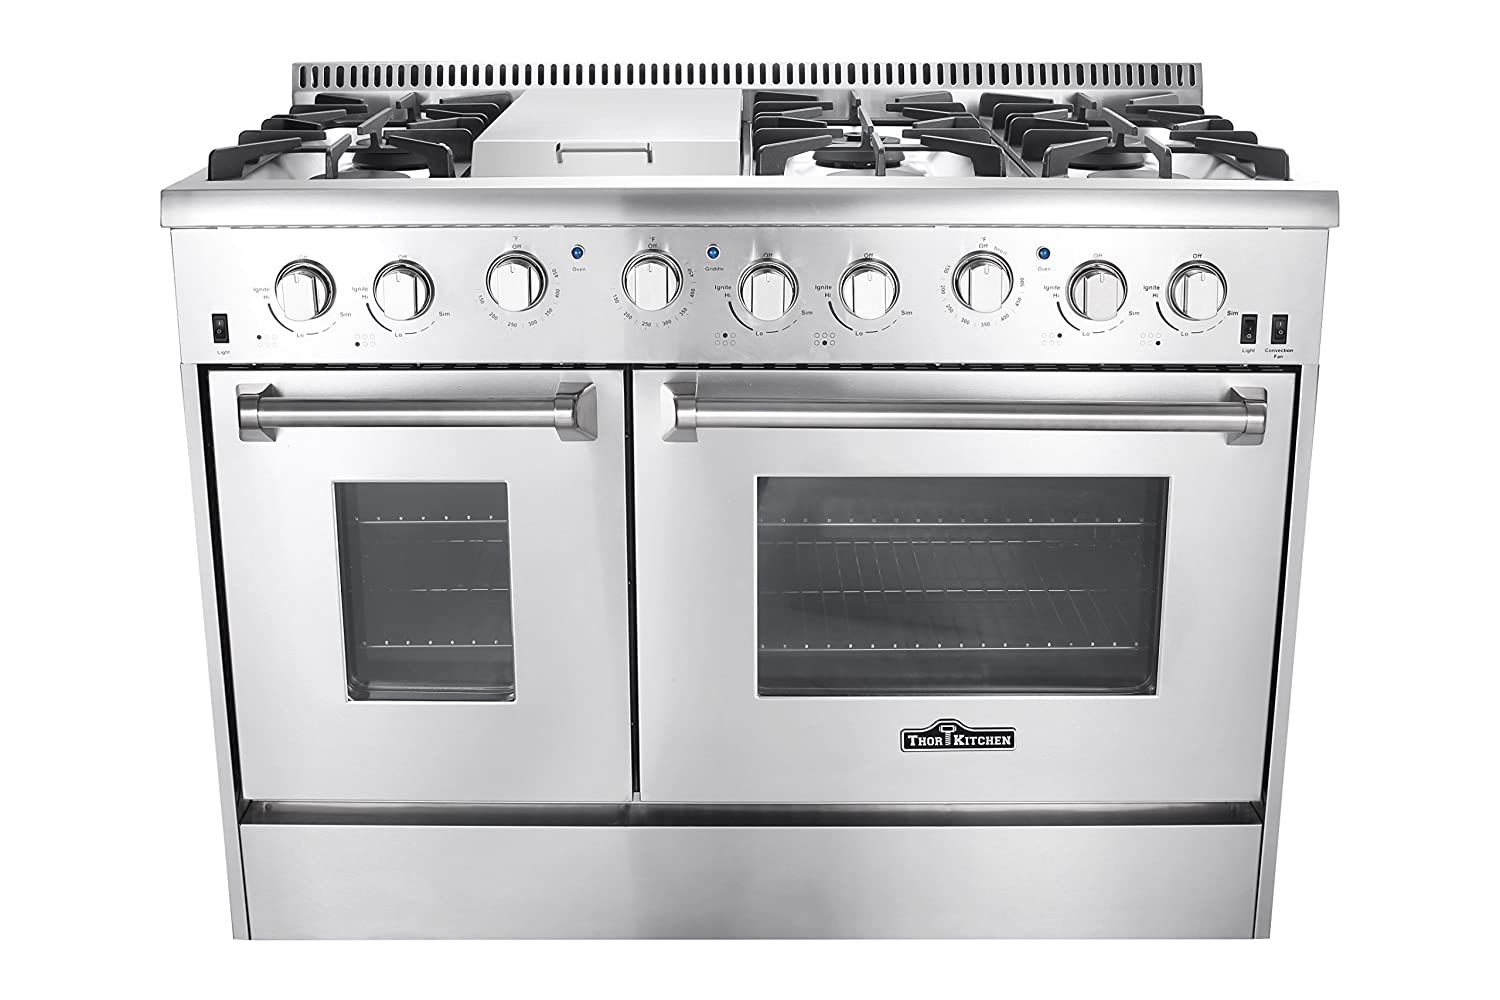 kitchen stove gas thor kitchen hrg4804u 6 burner gas range with oven 750